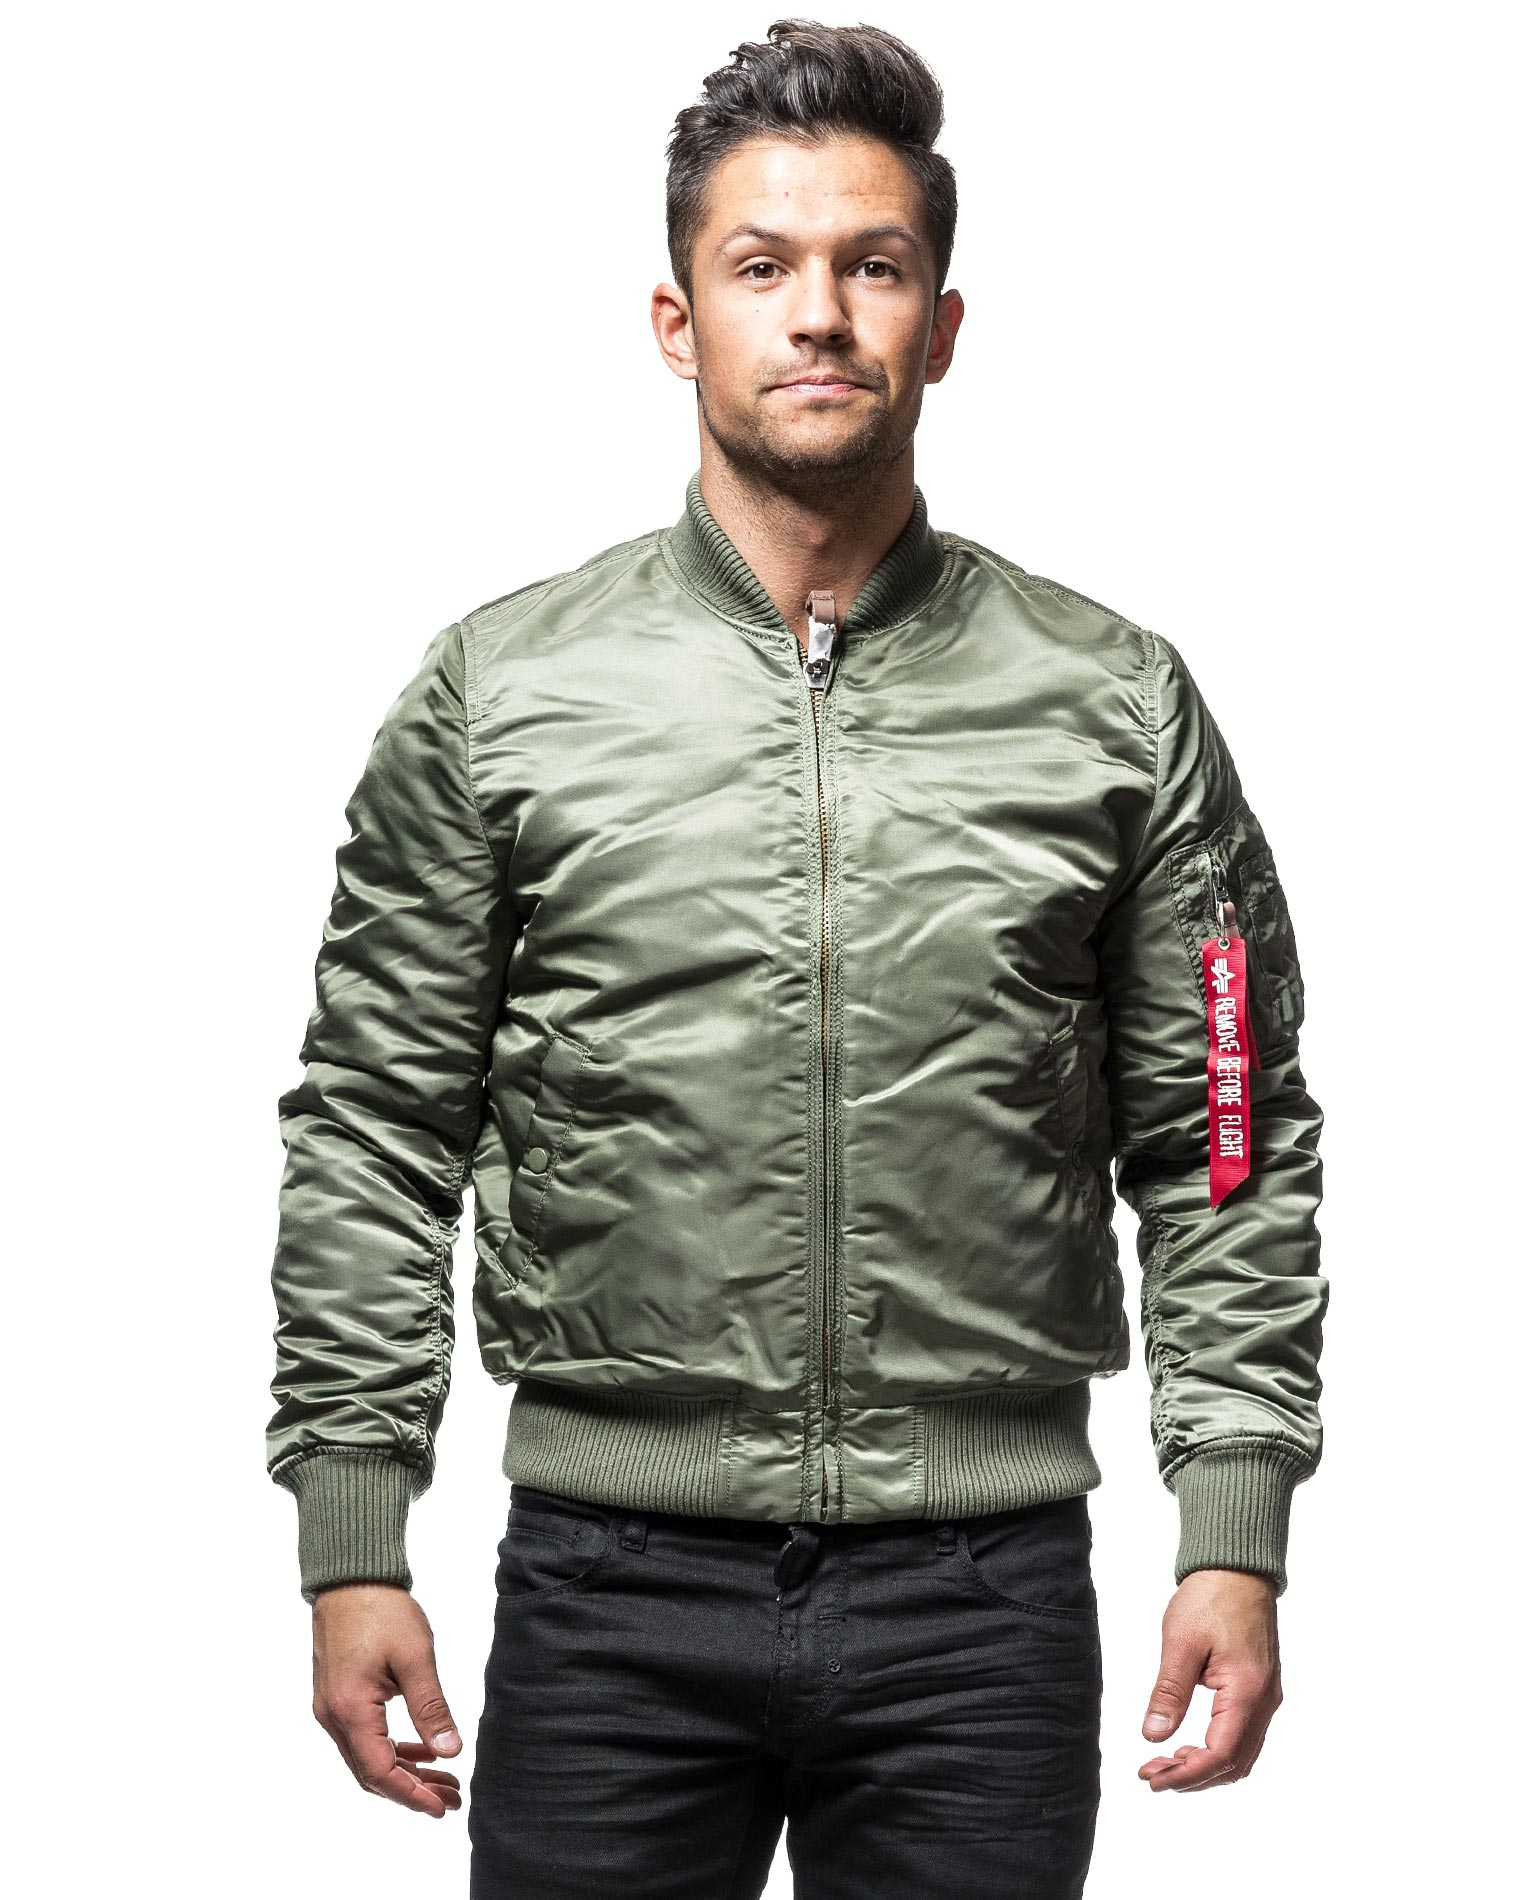 MA 1 VF 59 S Alpha Industries